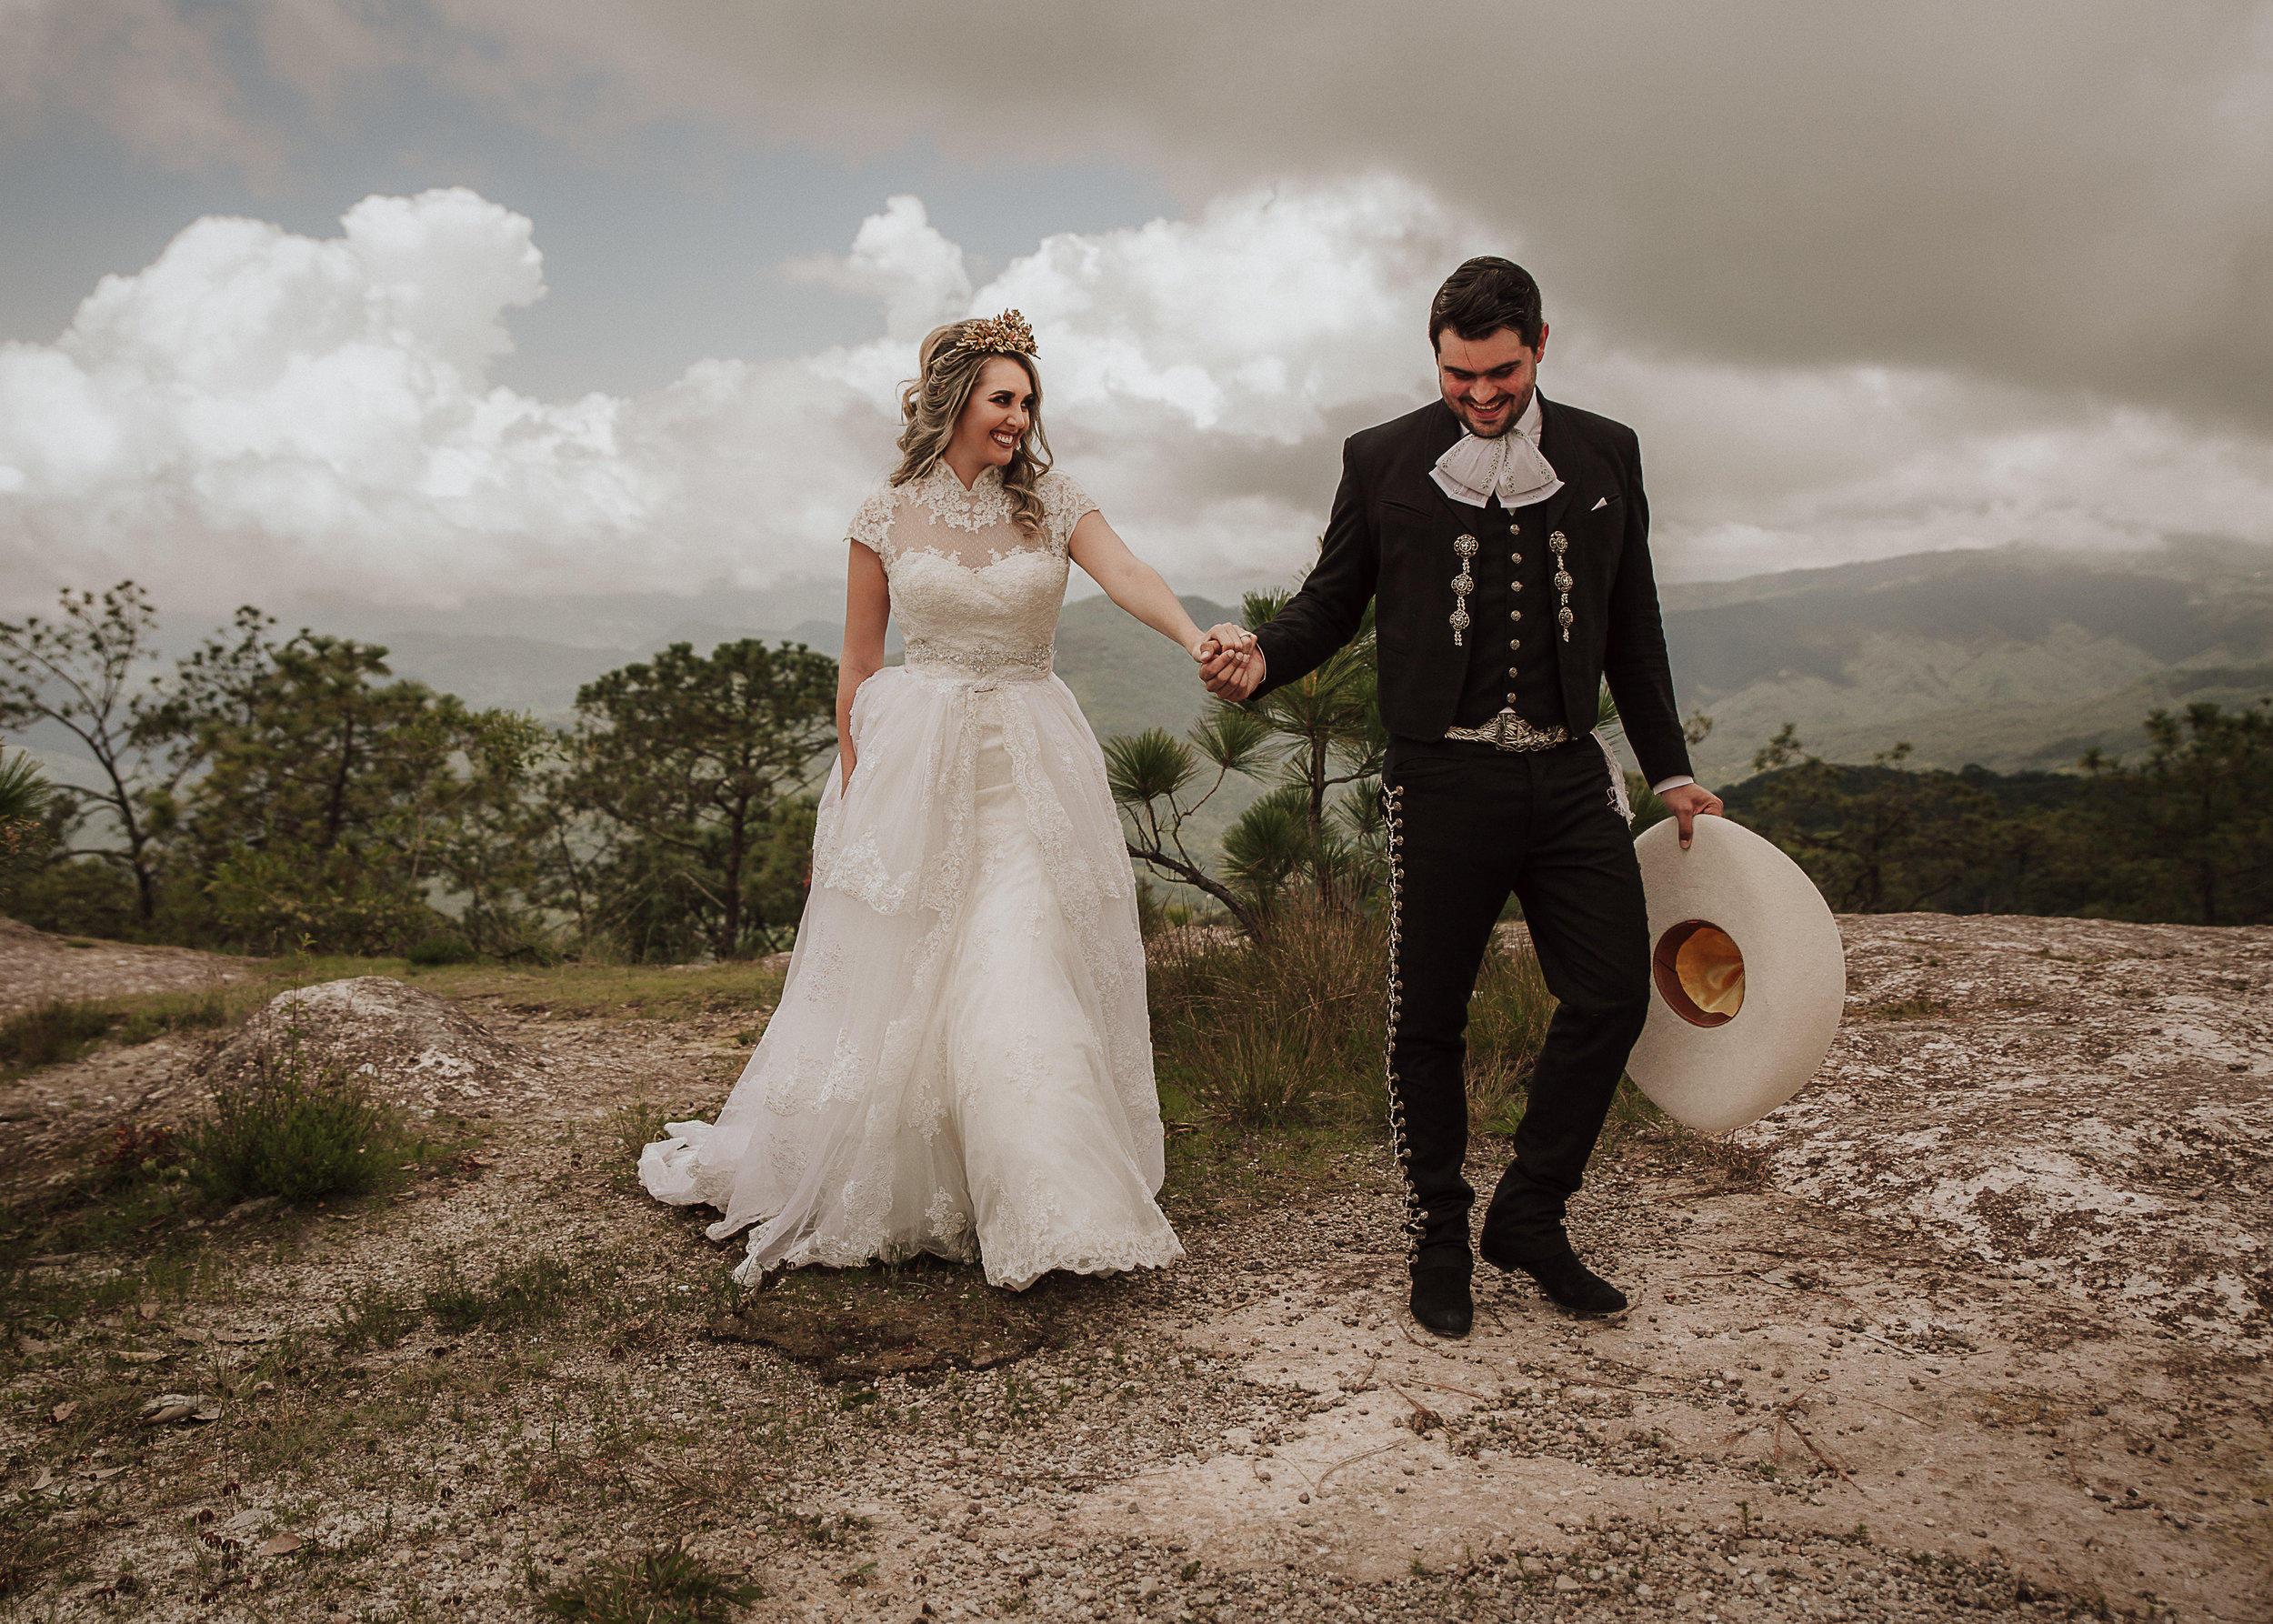 Fotografo-de-bodas-destino-Mexico-wedding-destination-photographer-san-miguel-de-allende-gto-guanajuato-queretaro-boho-bohemian-bohemio-chic-wedding-editorial-wedding-carotida-photographer